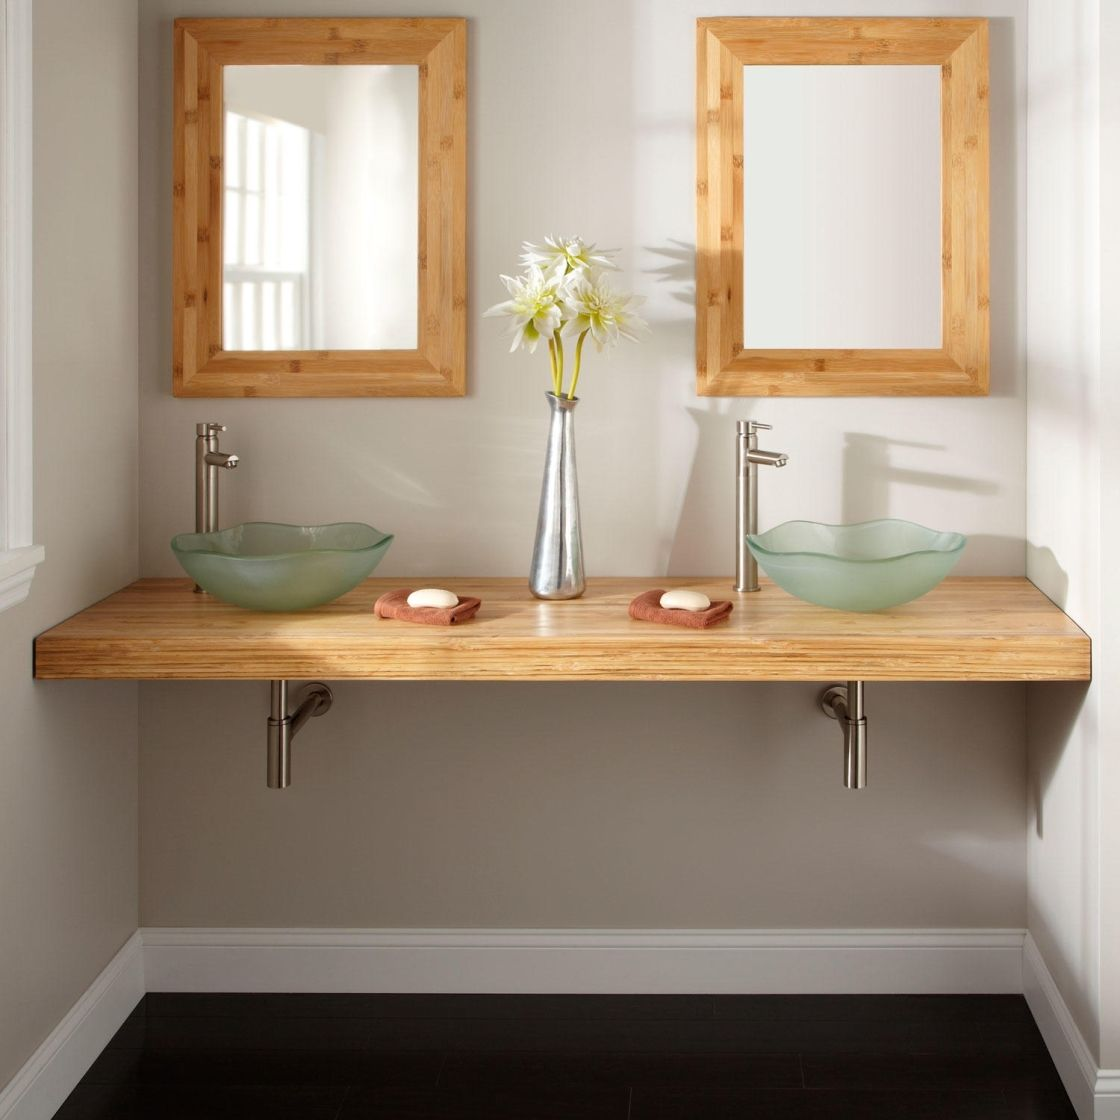 Bamboo Bathroom Vanities diy custom floating bathroom vanity design in solid natural bamboo